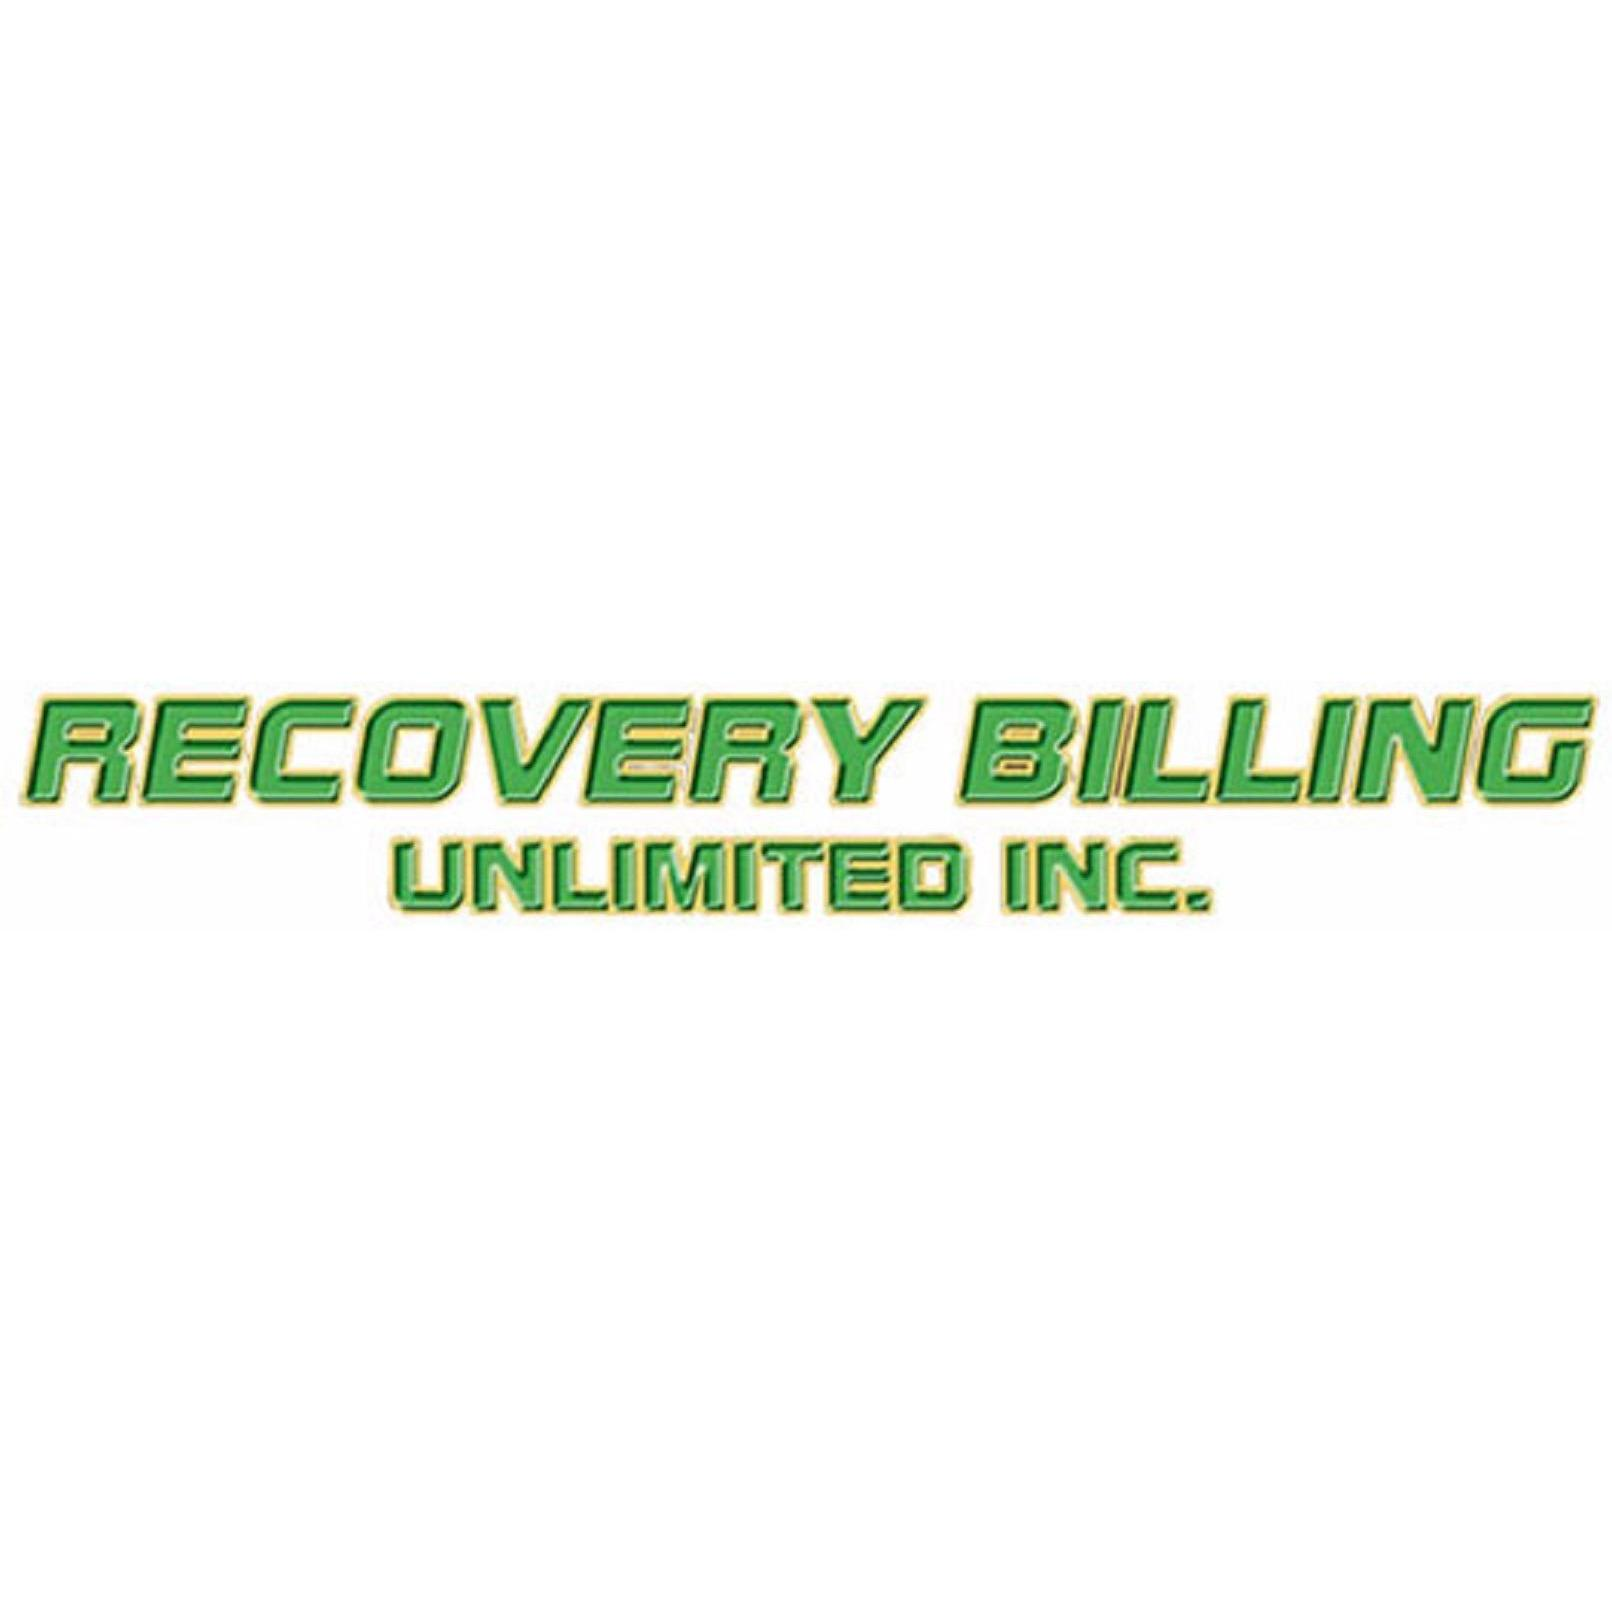 Recovery Billing Unlimited